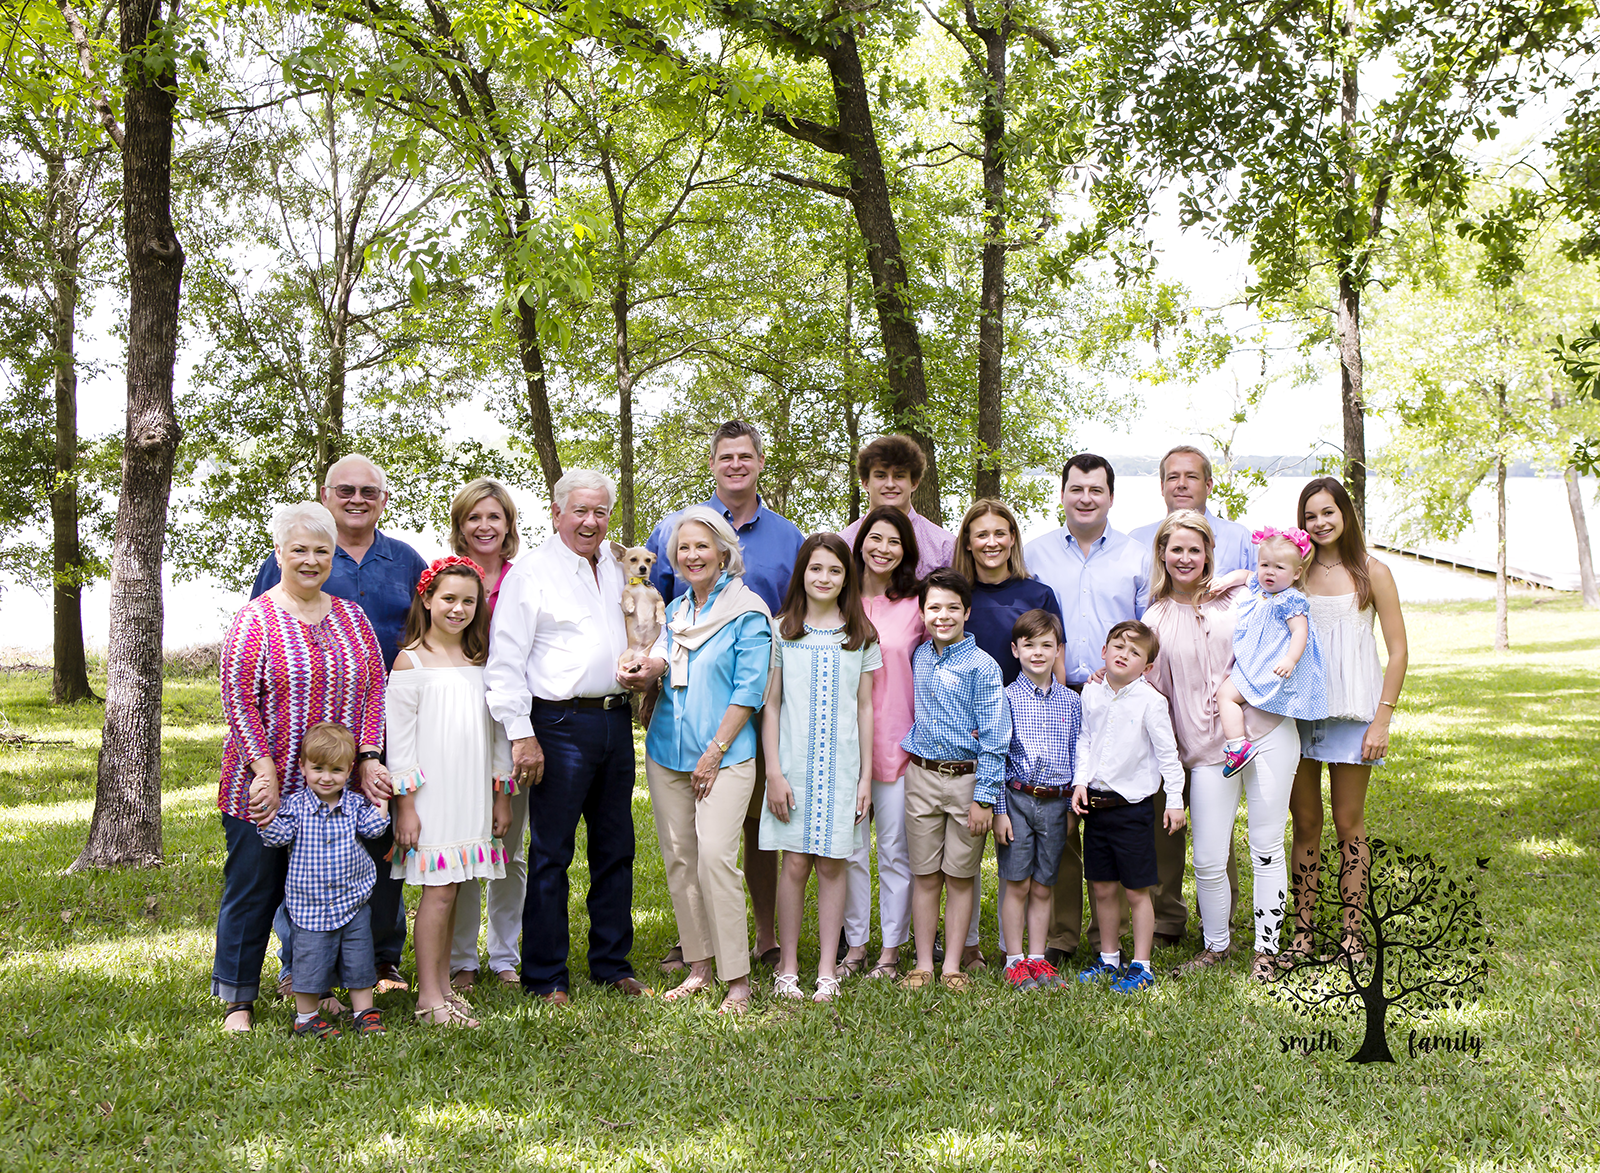 The whole group photograph of the family celebrating grandma's 75th birthday.